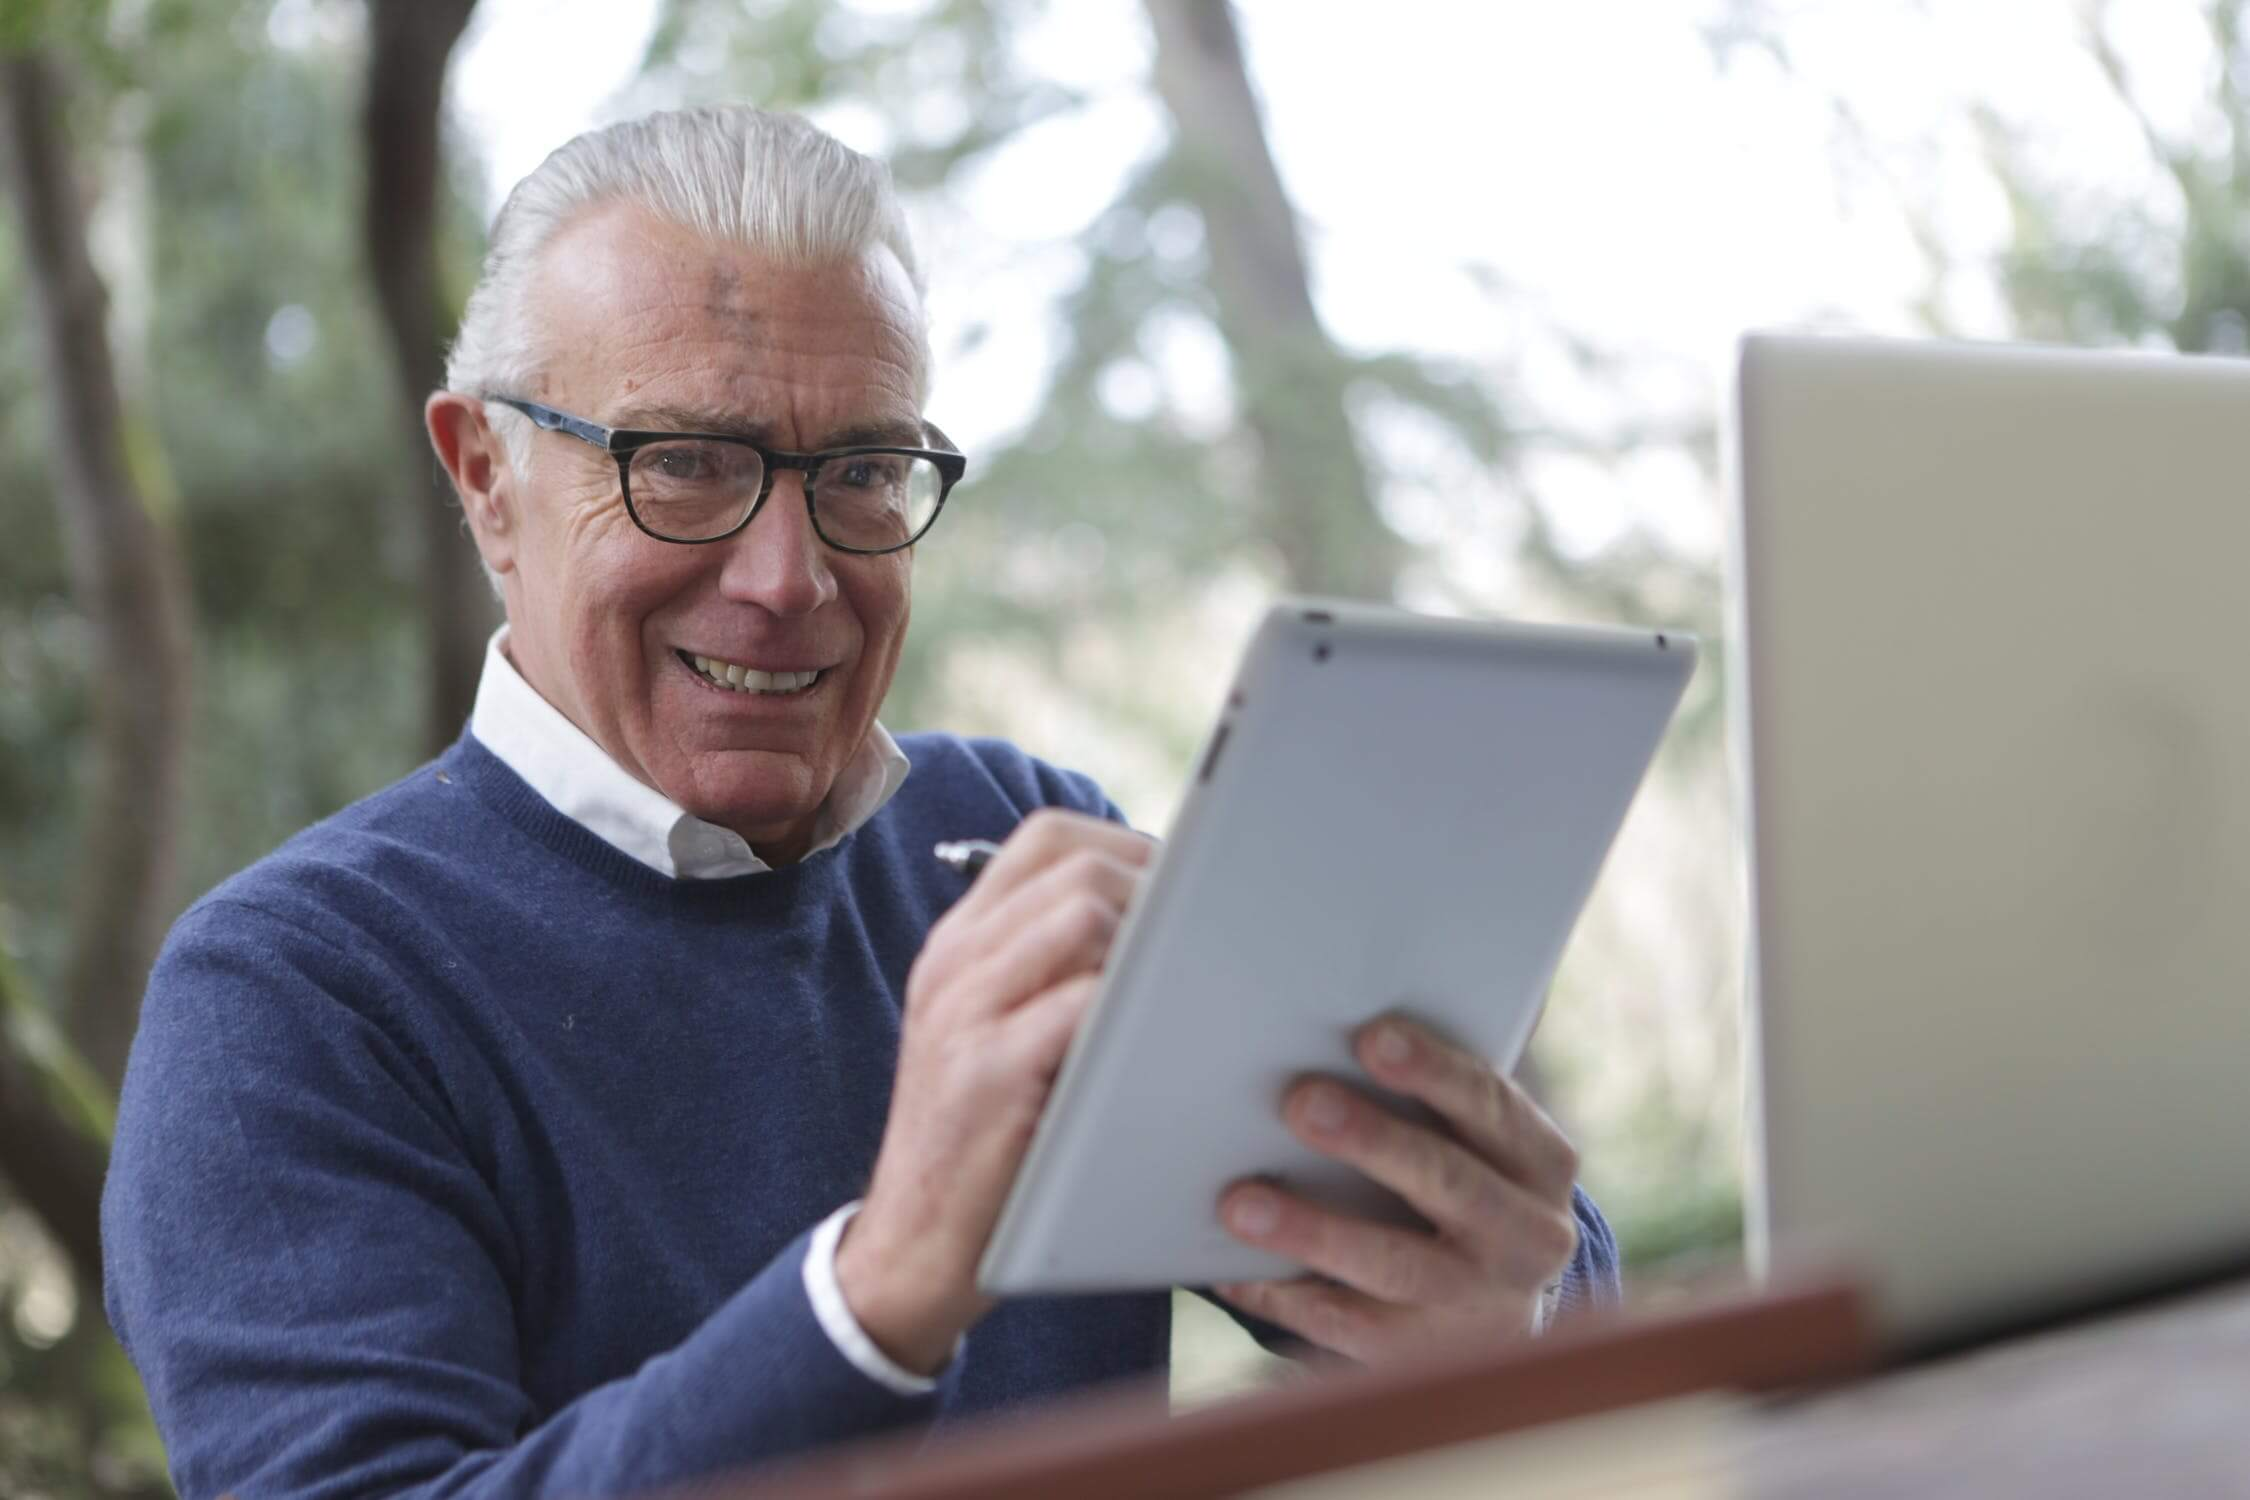 An older man using an ipad to stay connected with loved ones in quarantine